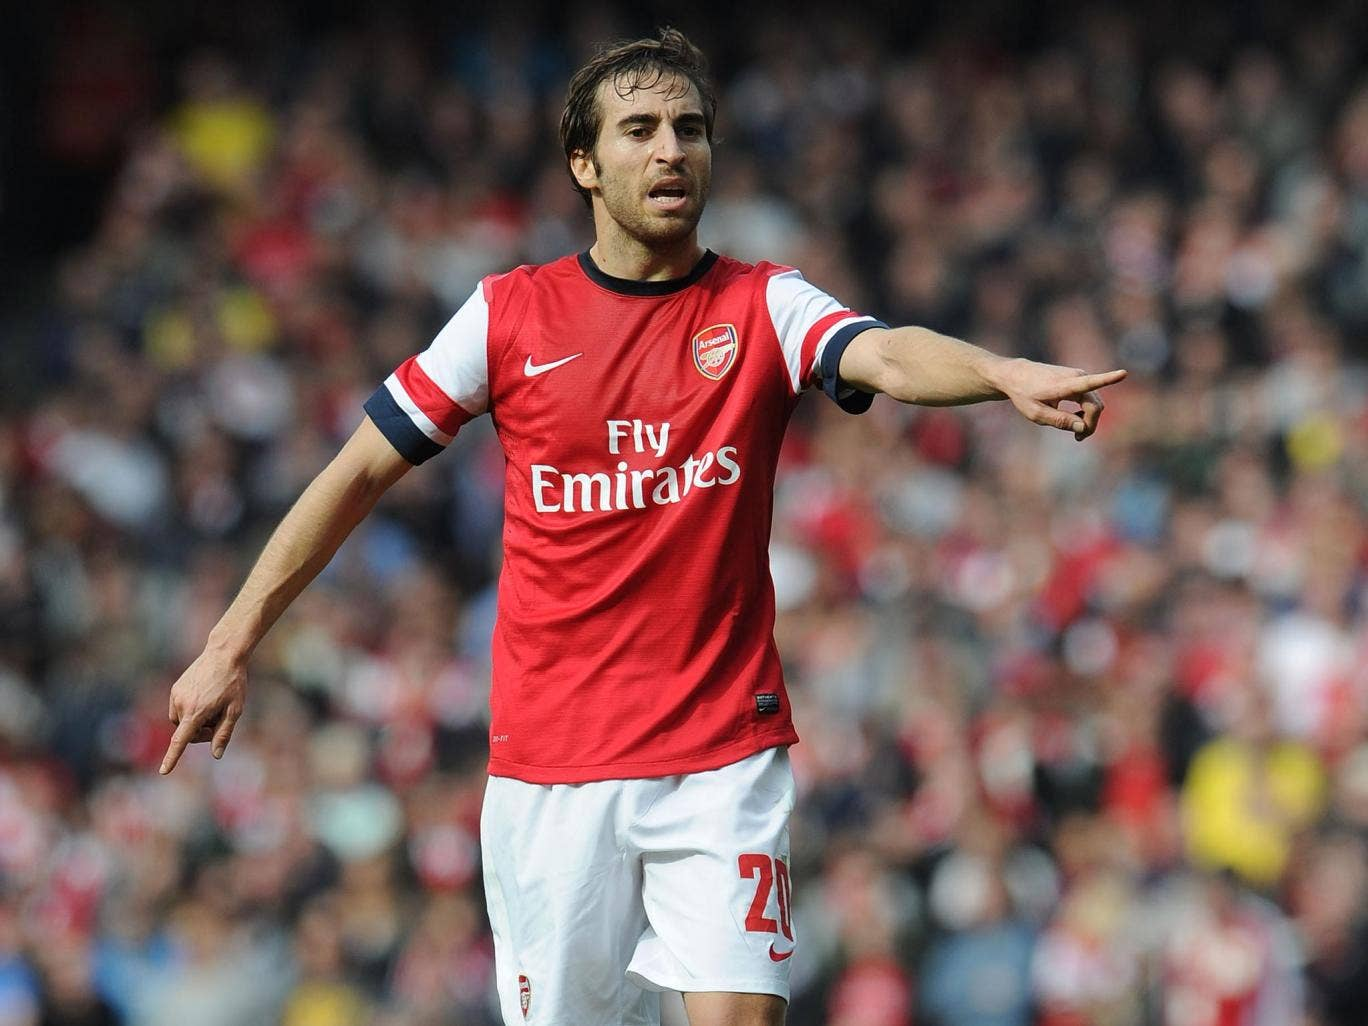 Mathieu Flamini believes a lack of character could be to blame for Arsenal's trophy drought but stresses the current will fight to secure success this season